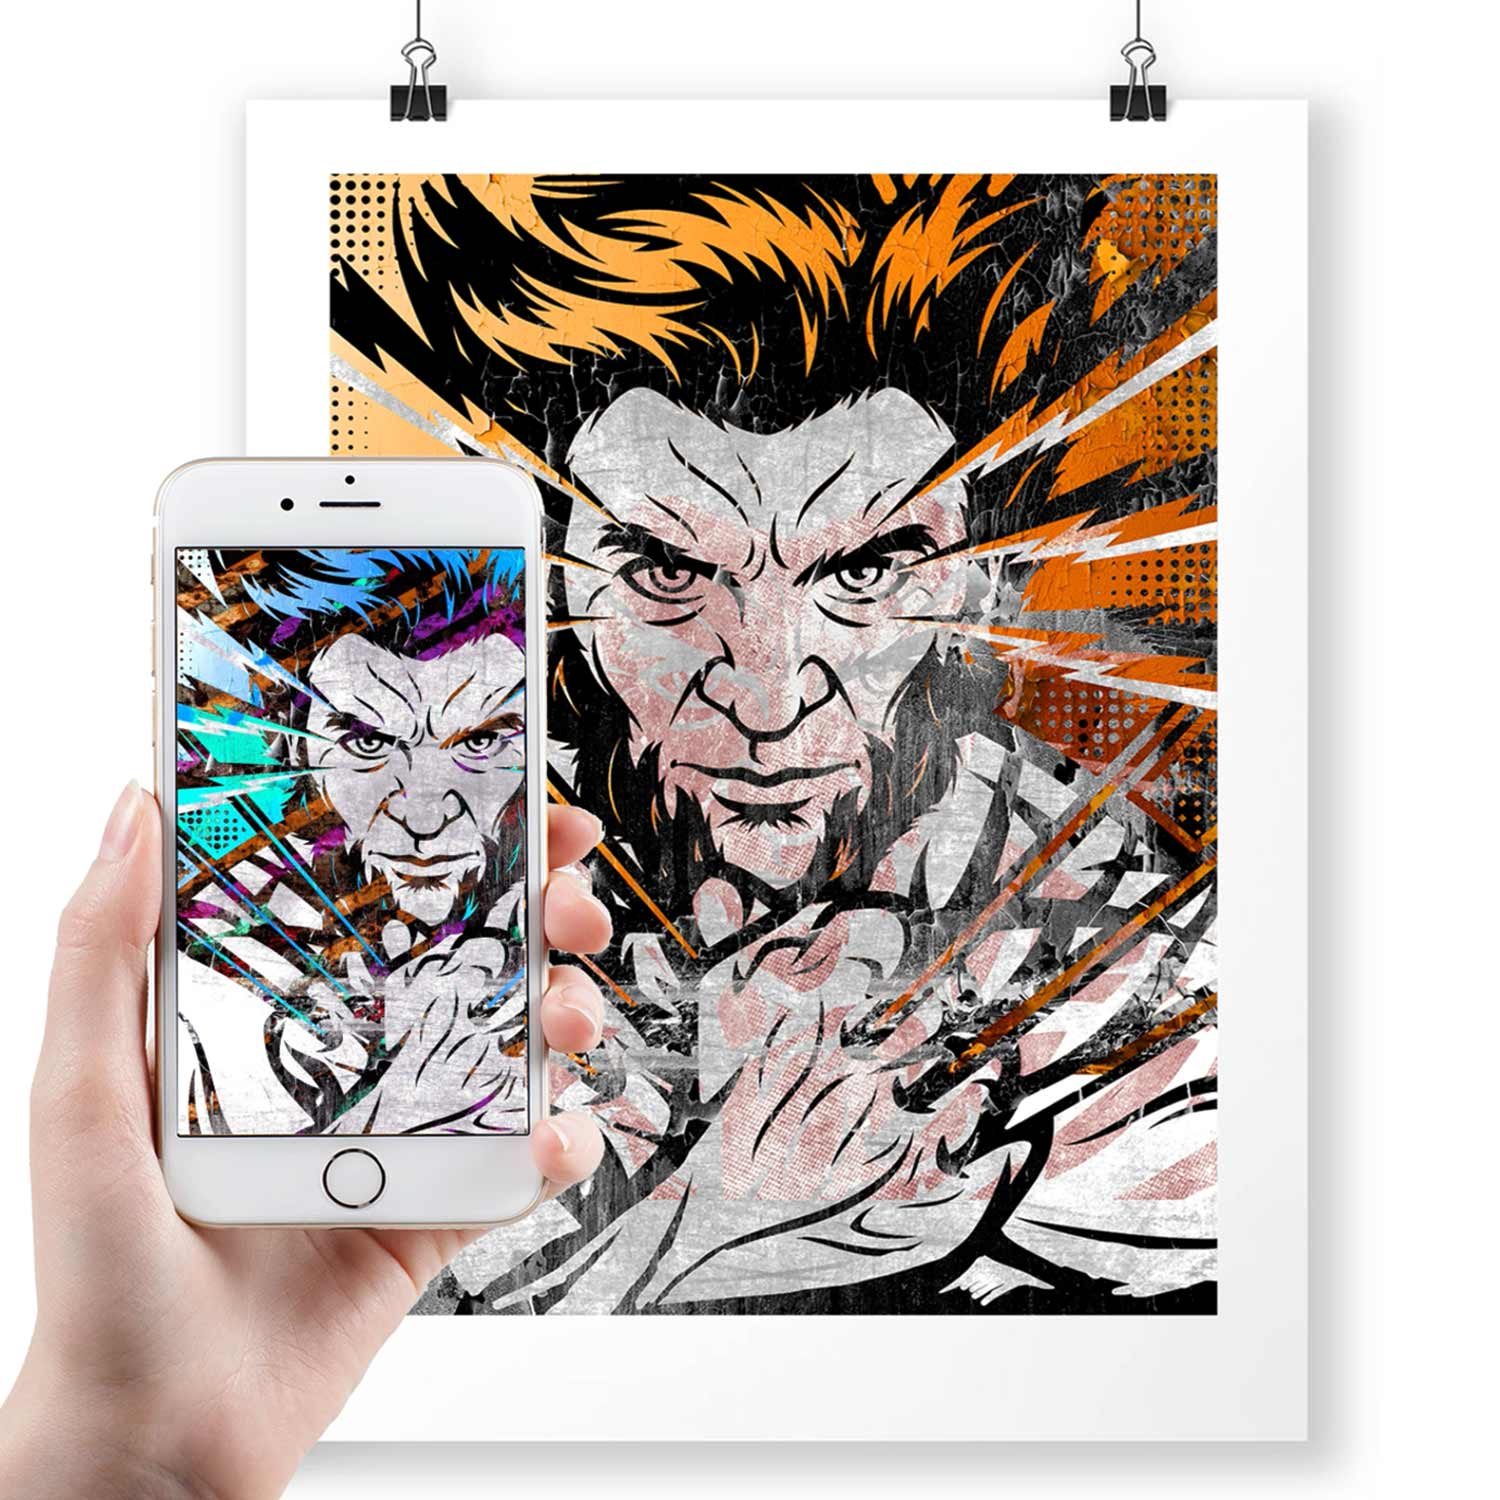 wolverine augmented reality